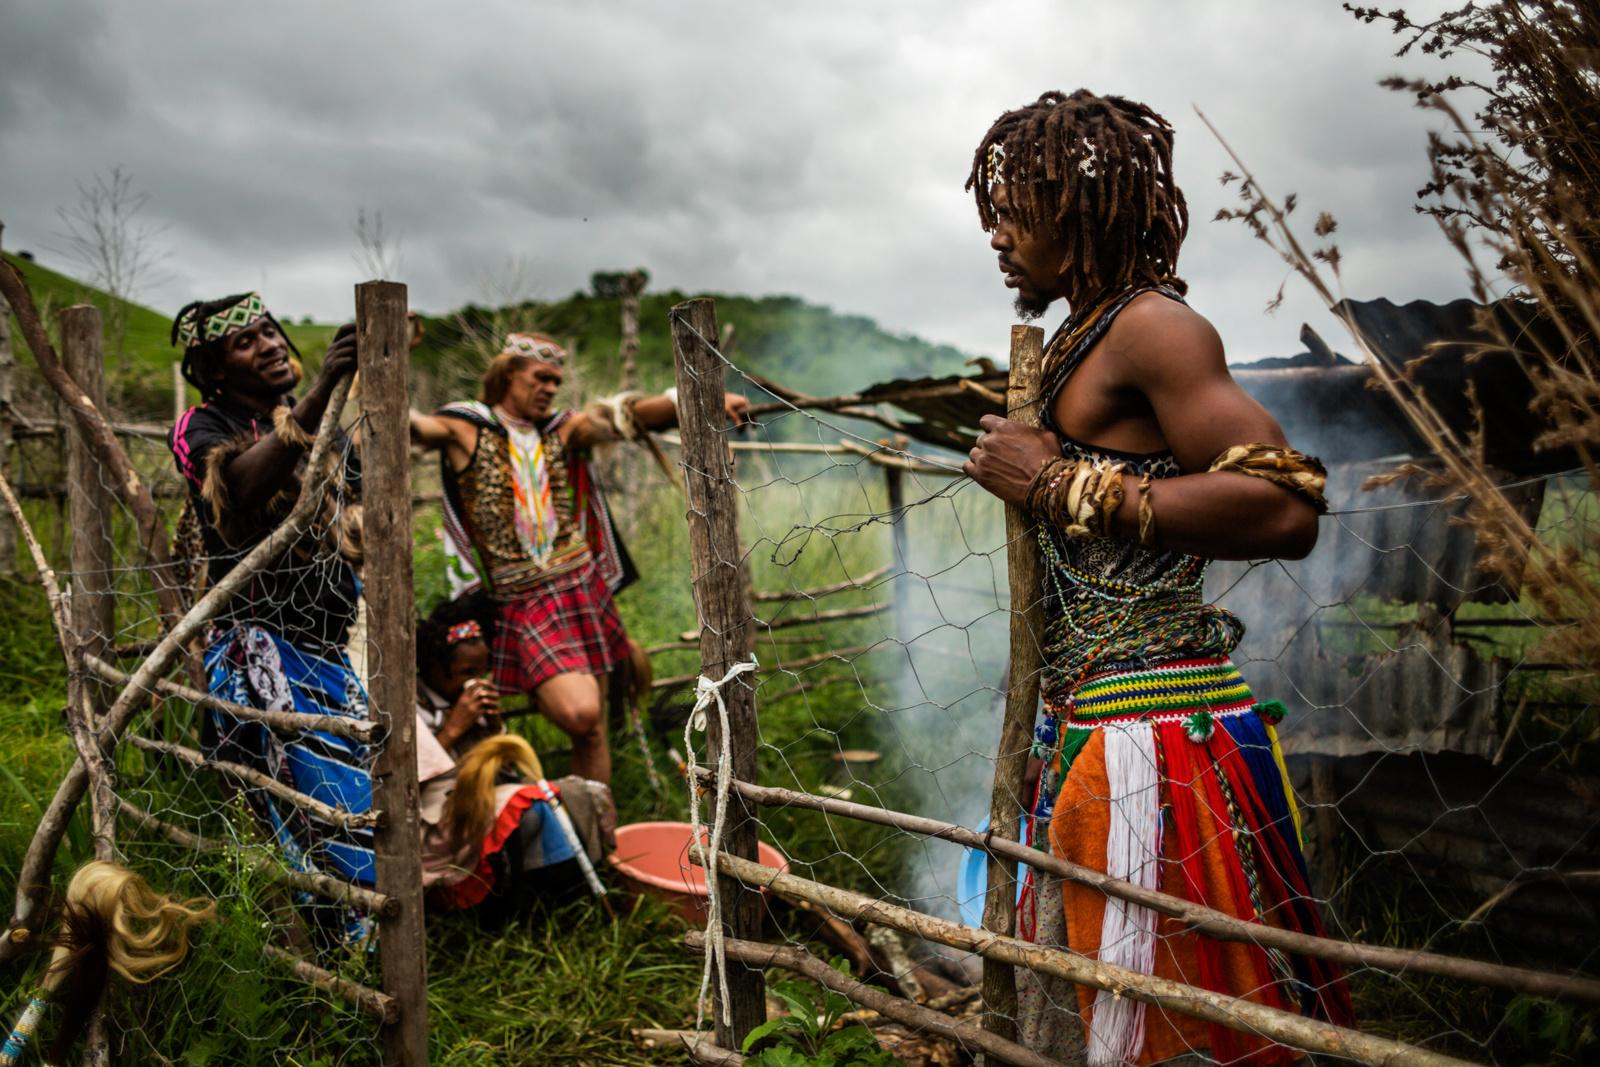 MDAKANE, LUSIKISIKI DISTRICT, SOUTH AFRICA - NOVEMBER 29, 2014: A group of sangomas stands in a dedicated area where they burn the bones of the sacrificed animals on November 29, 2014 in Mdakane, Lusikisiki District, South Africa. The burning of the bones officially marks the end of a traditional ceremony and is part of the 'old person's' symbolic death in whose place the animal died.